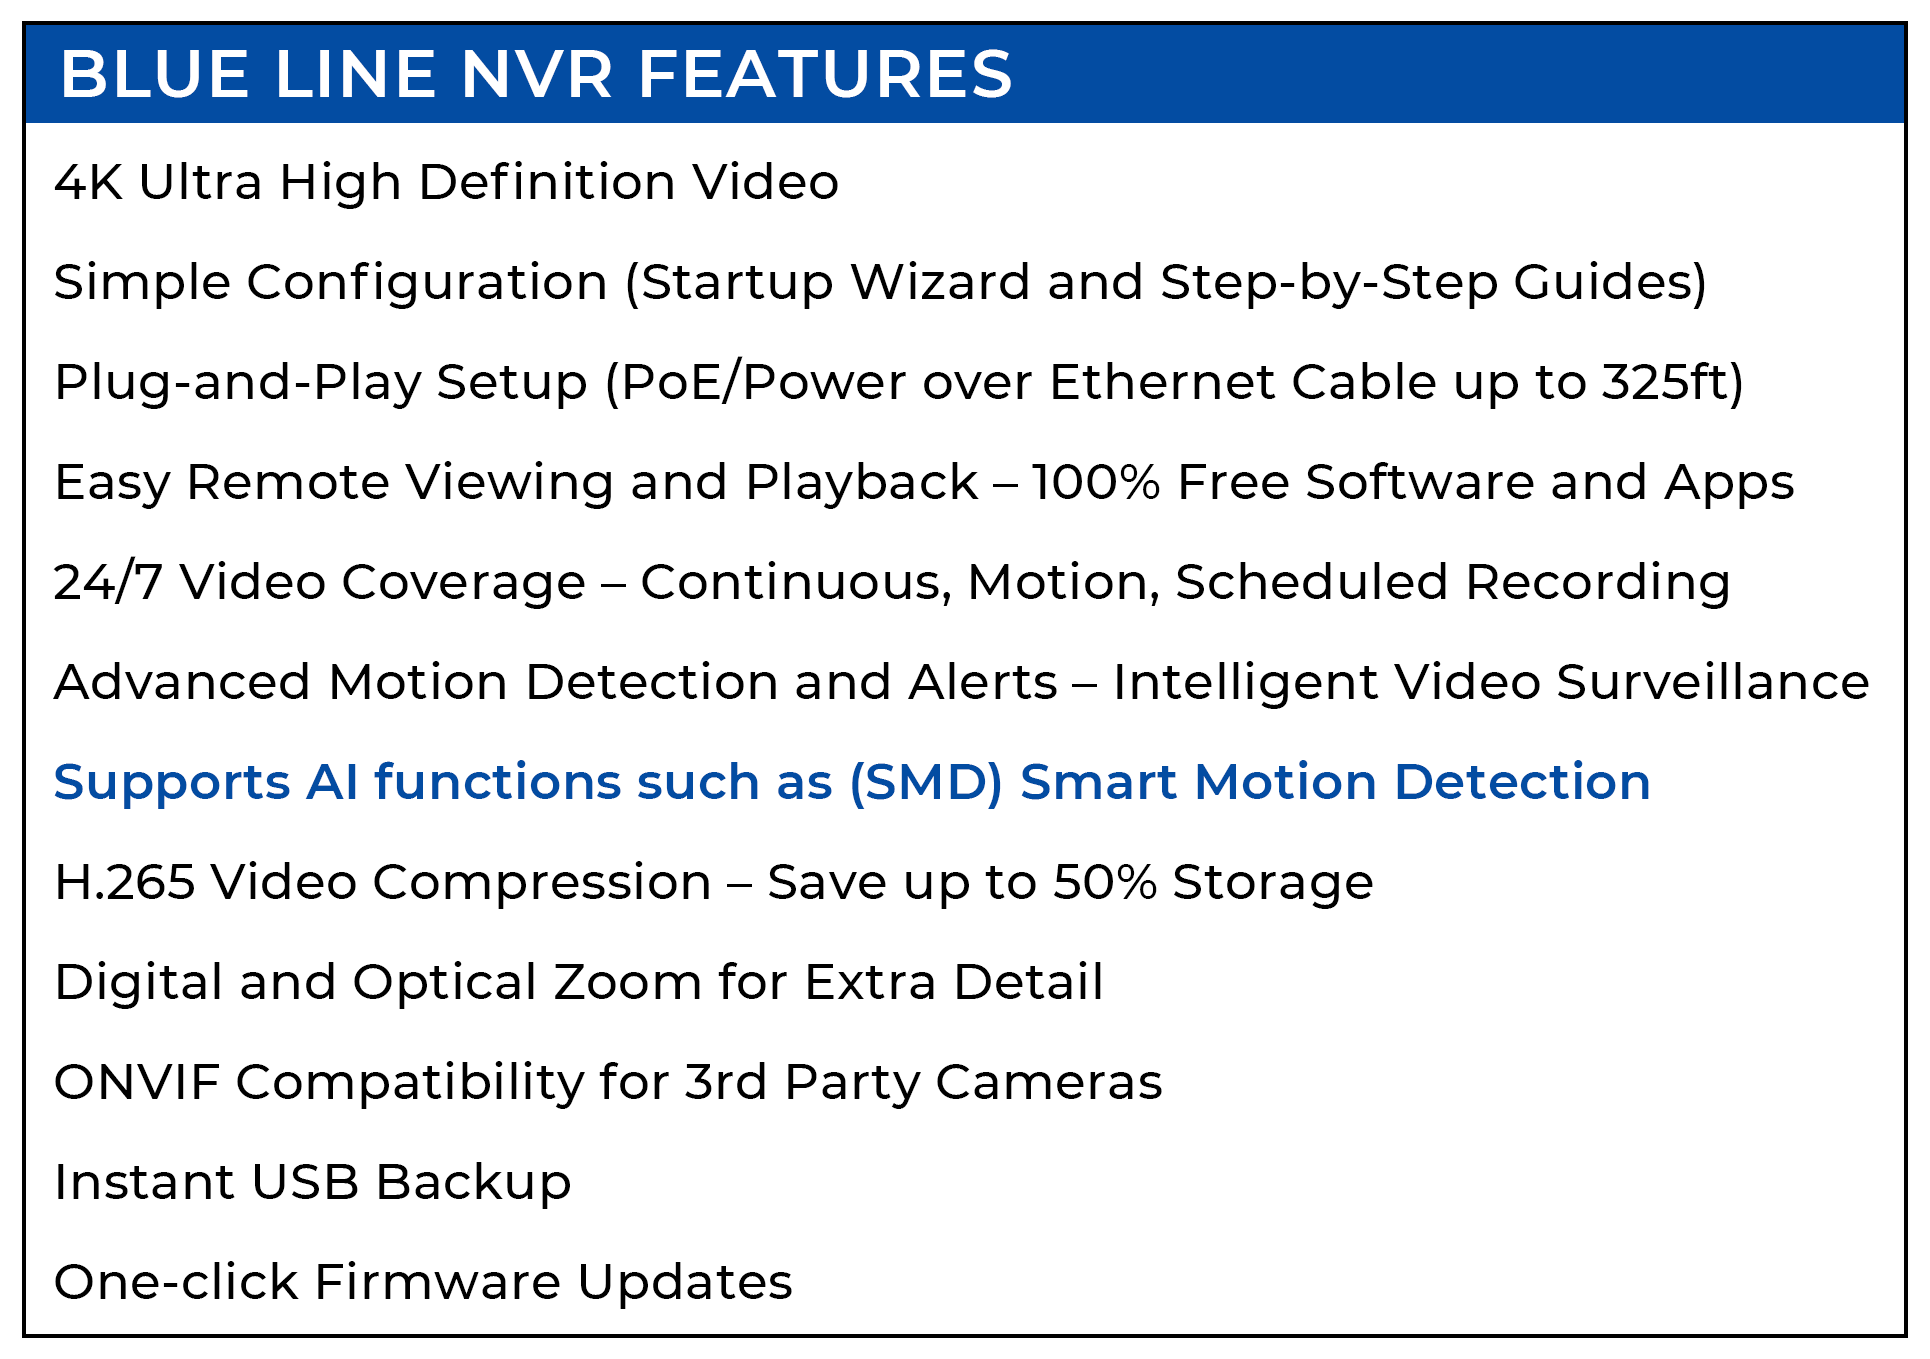 blue-line-nvr-features2.png